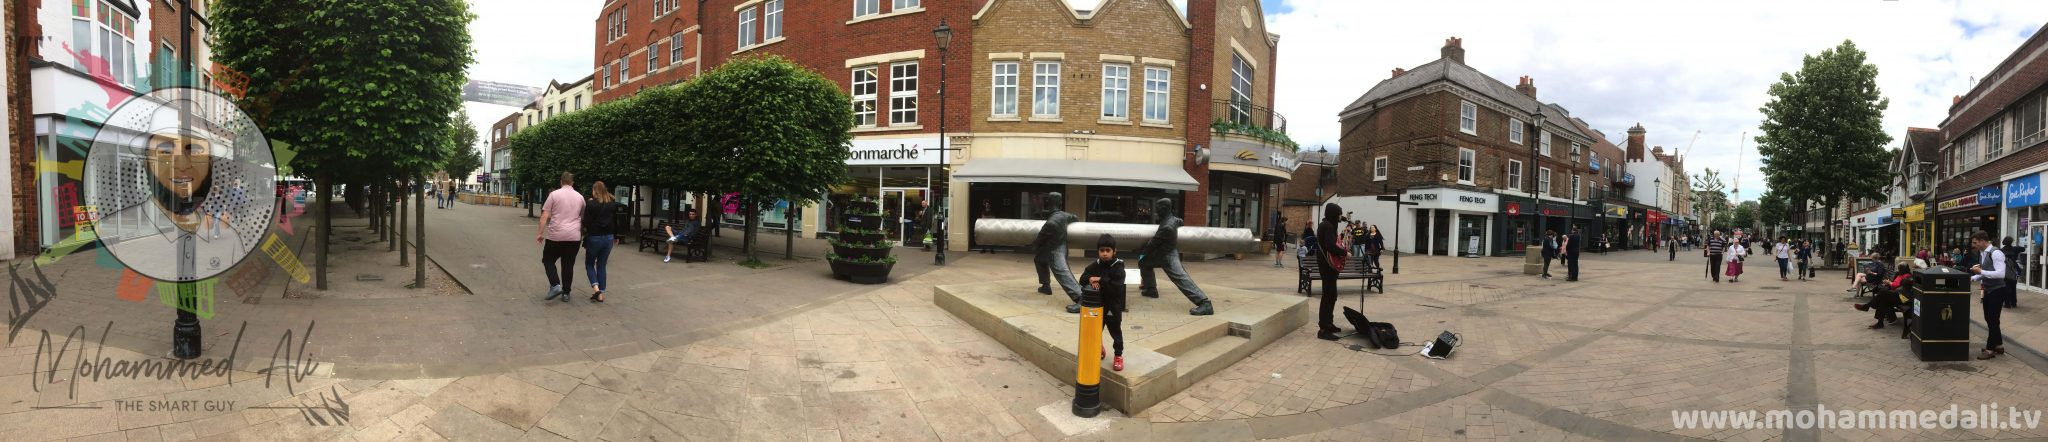 Panoramic view of the Lino Statue and its surrounding in Staines-upon-Thames